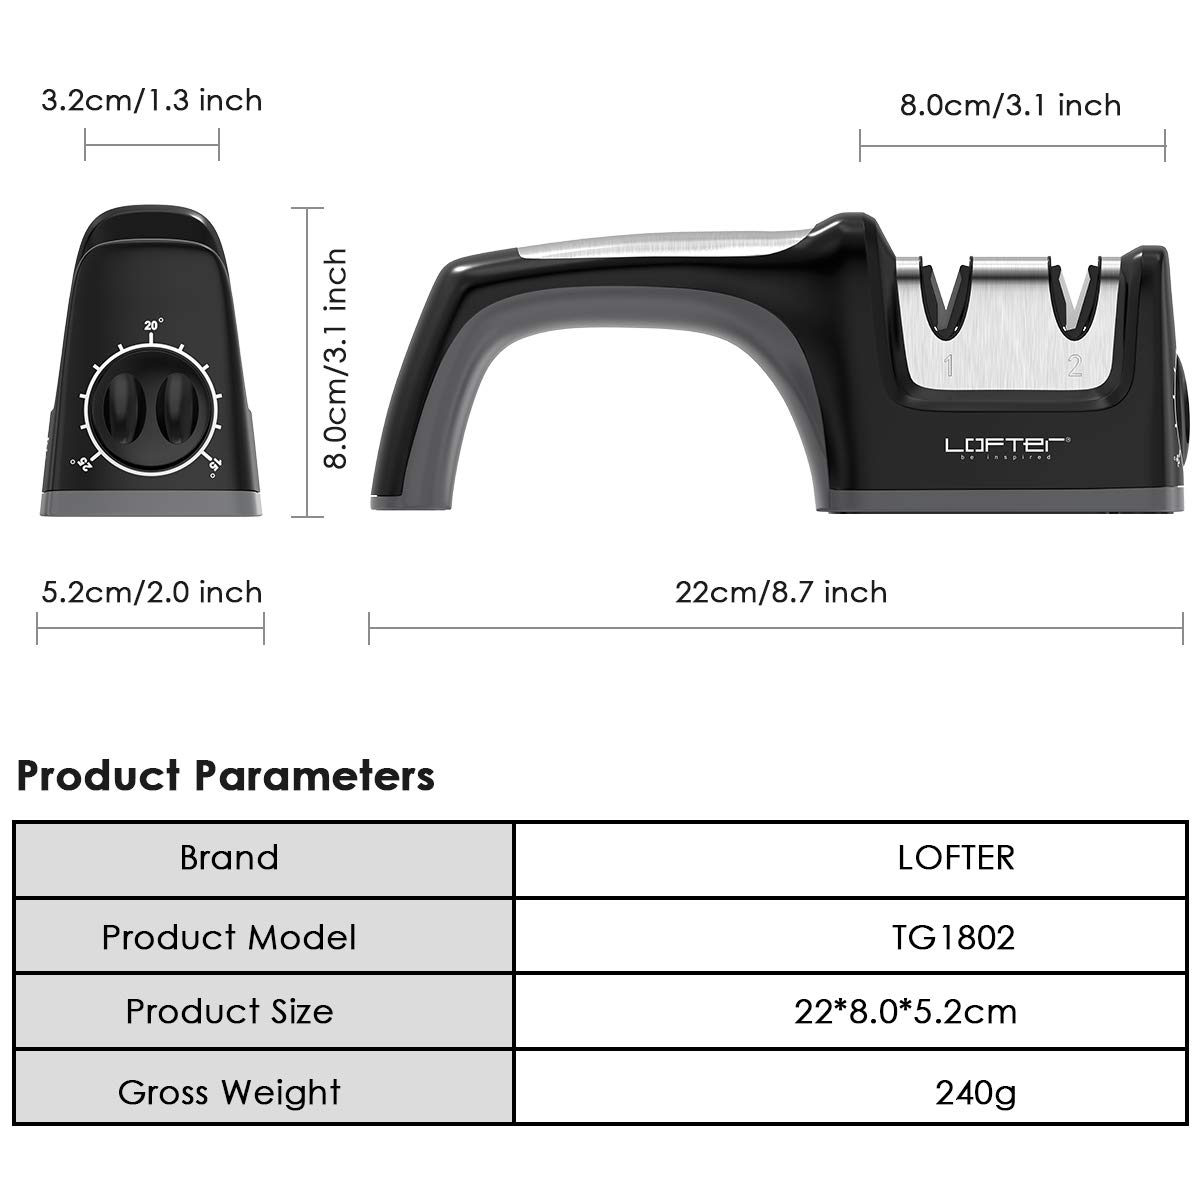 Kitchen Knife Sharpener, LOFTER 2 Stage Knife Sharpening with Angle Adjustment Knob, Diamond and Ceramic, Restore and Polish Blades, Non-slip Base Sharpening Knife, Easy to Control, Black by LOFTER (Image #6)